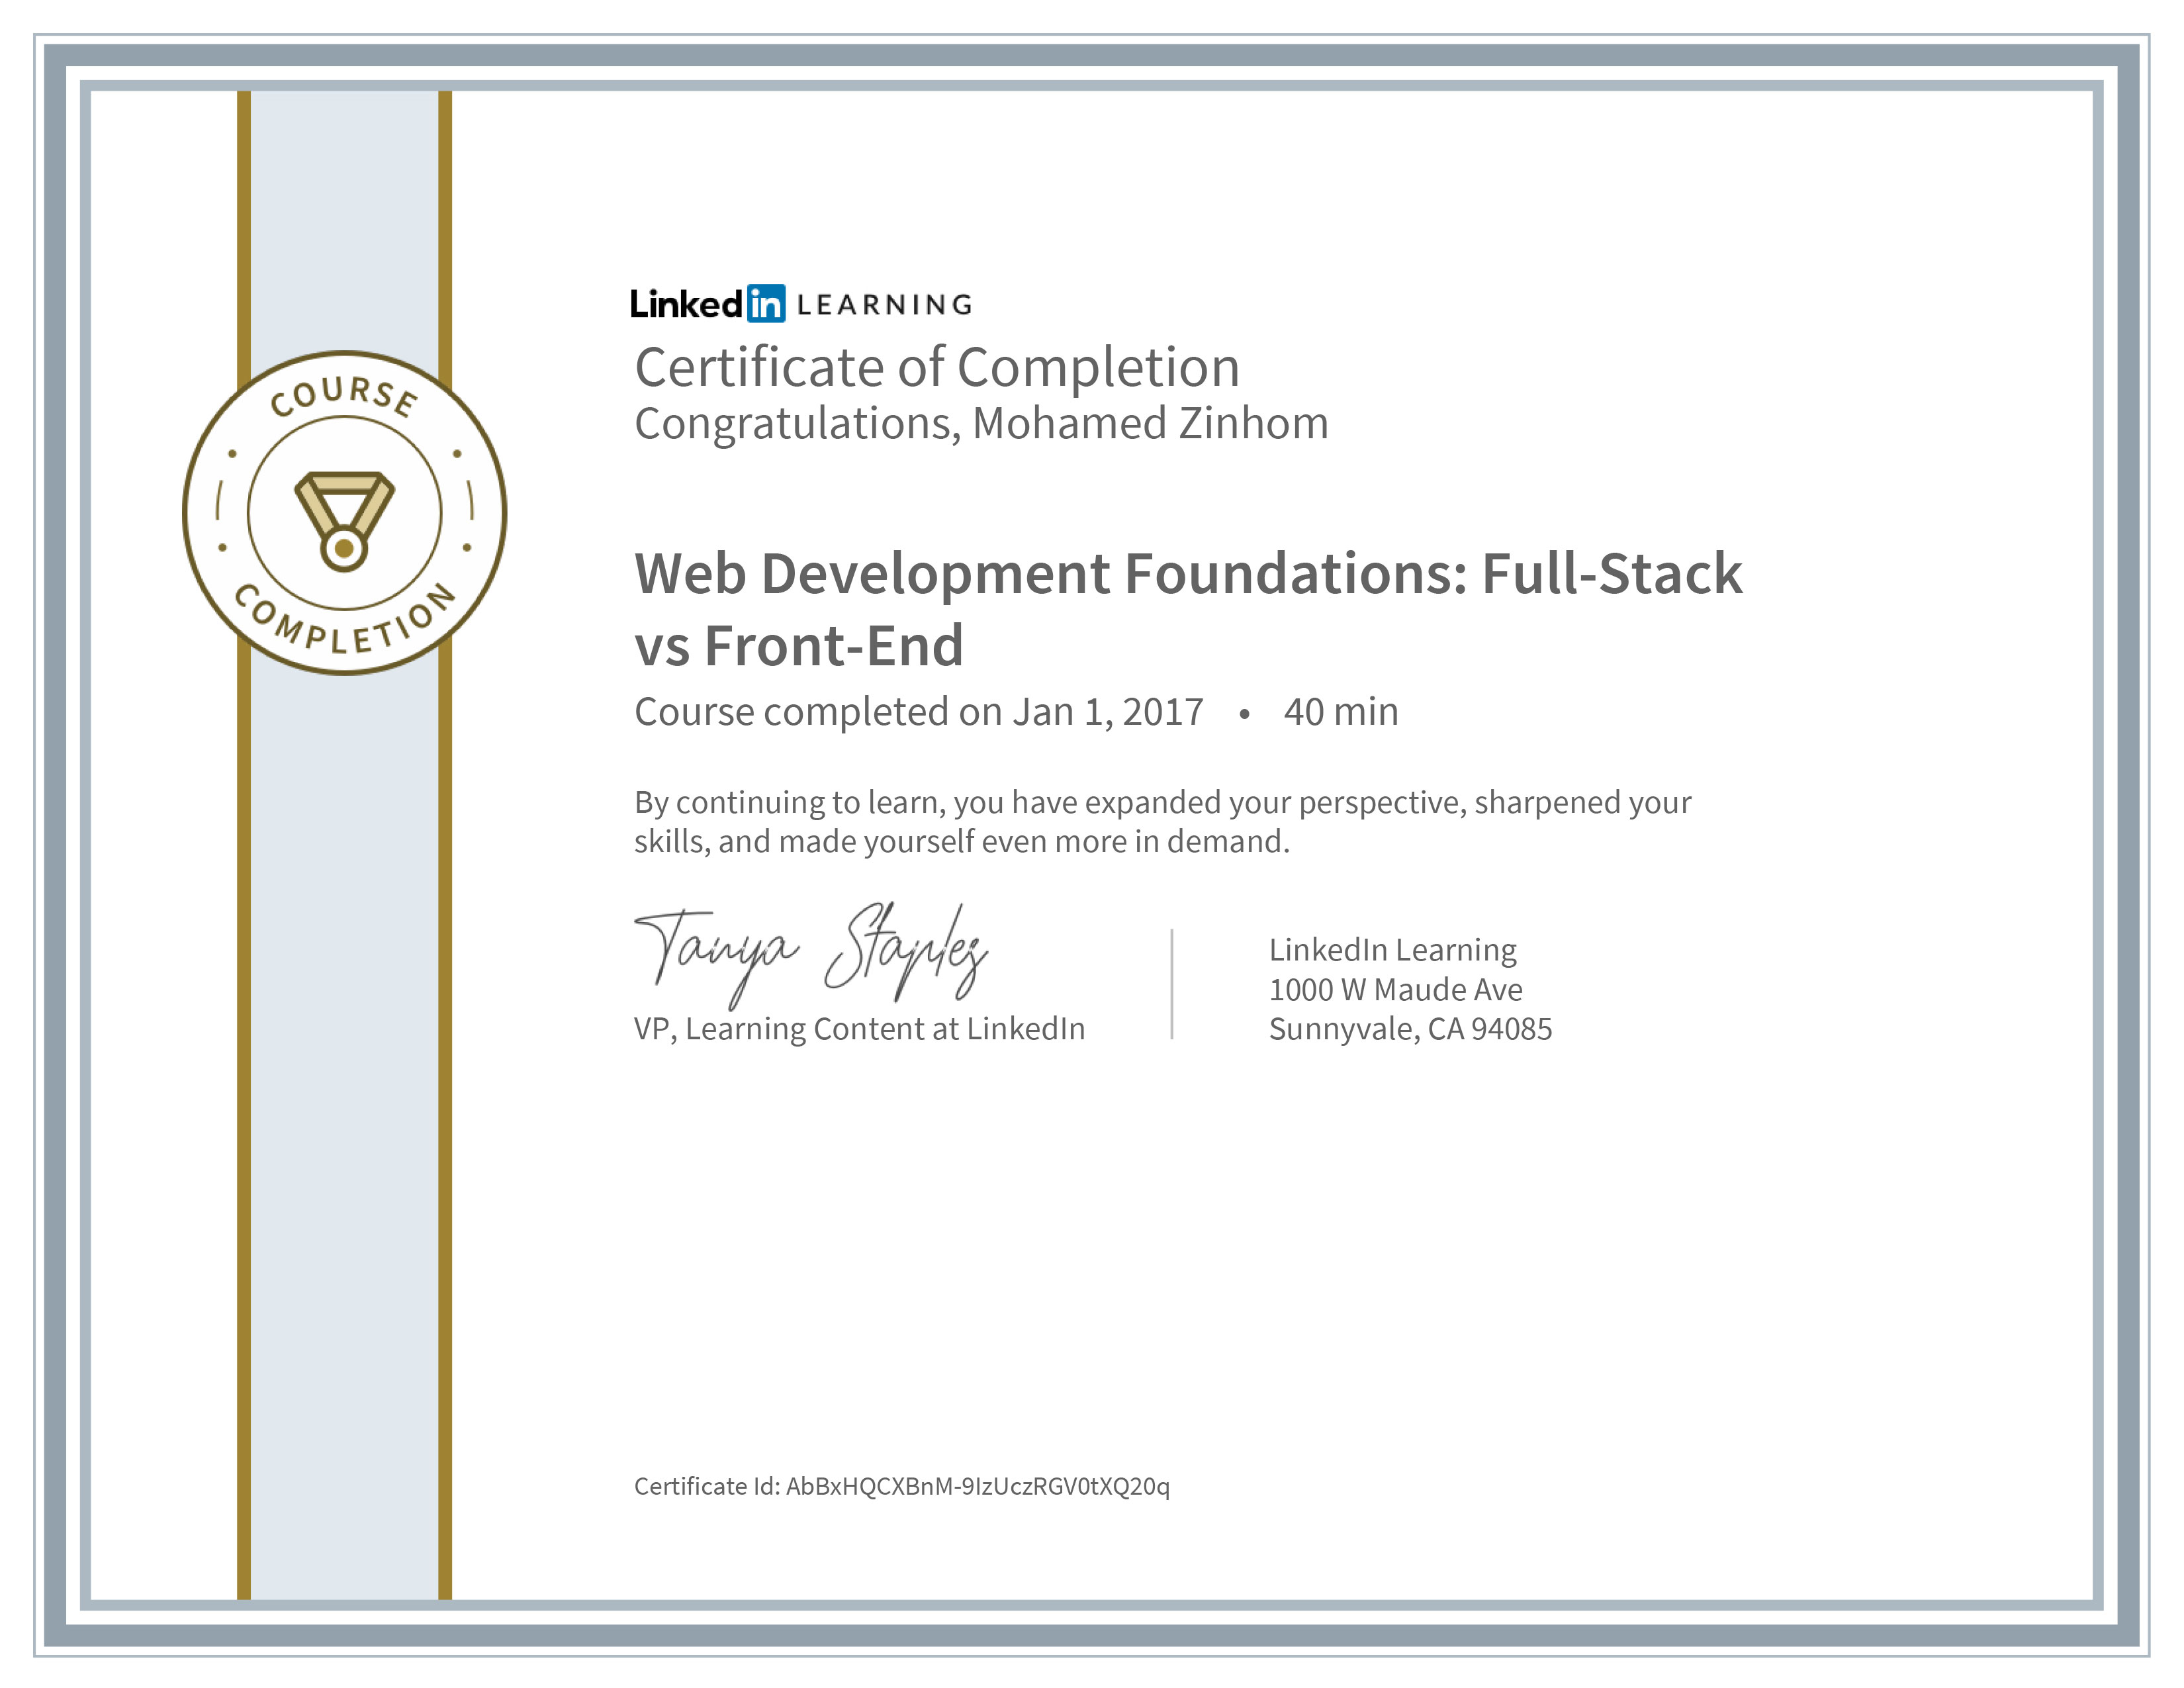 Certificate Of Completion Web Development Foundations Full Stack Vs Front End